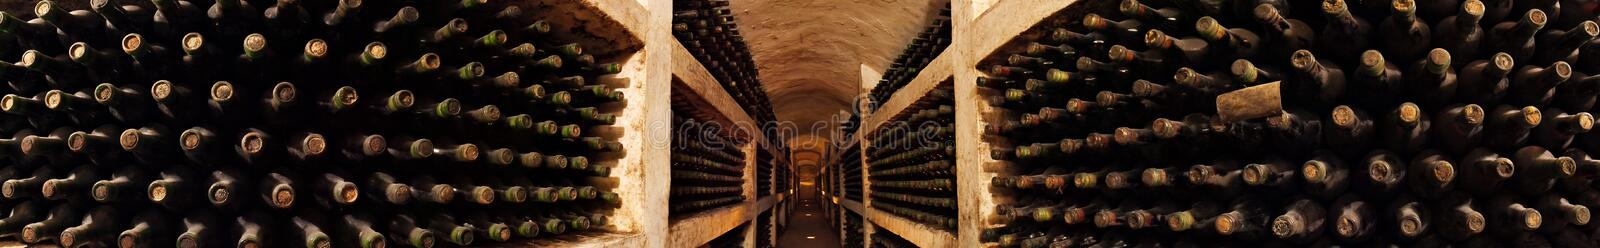 Old wine collection in wine cellar royalty free stock images